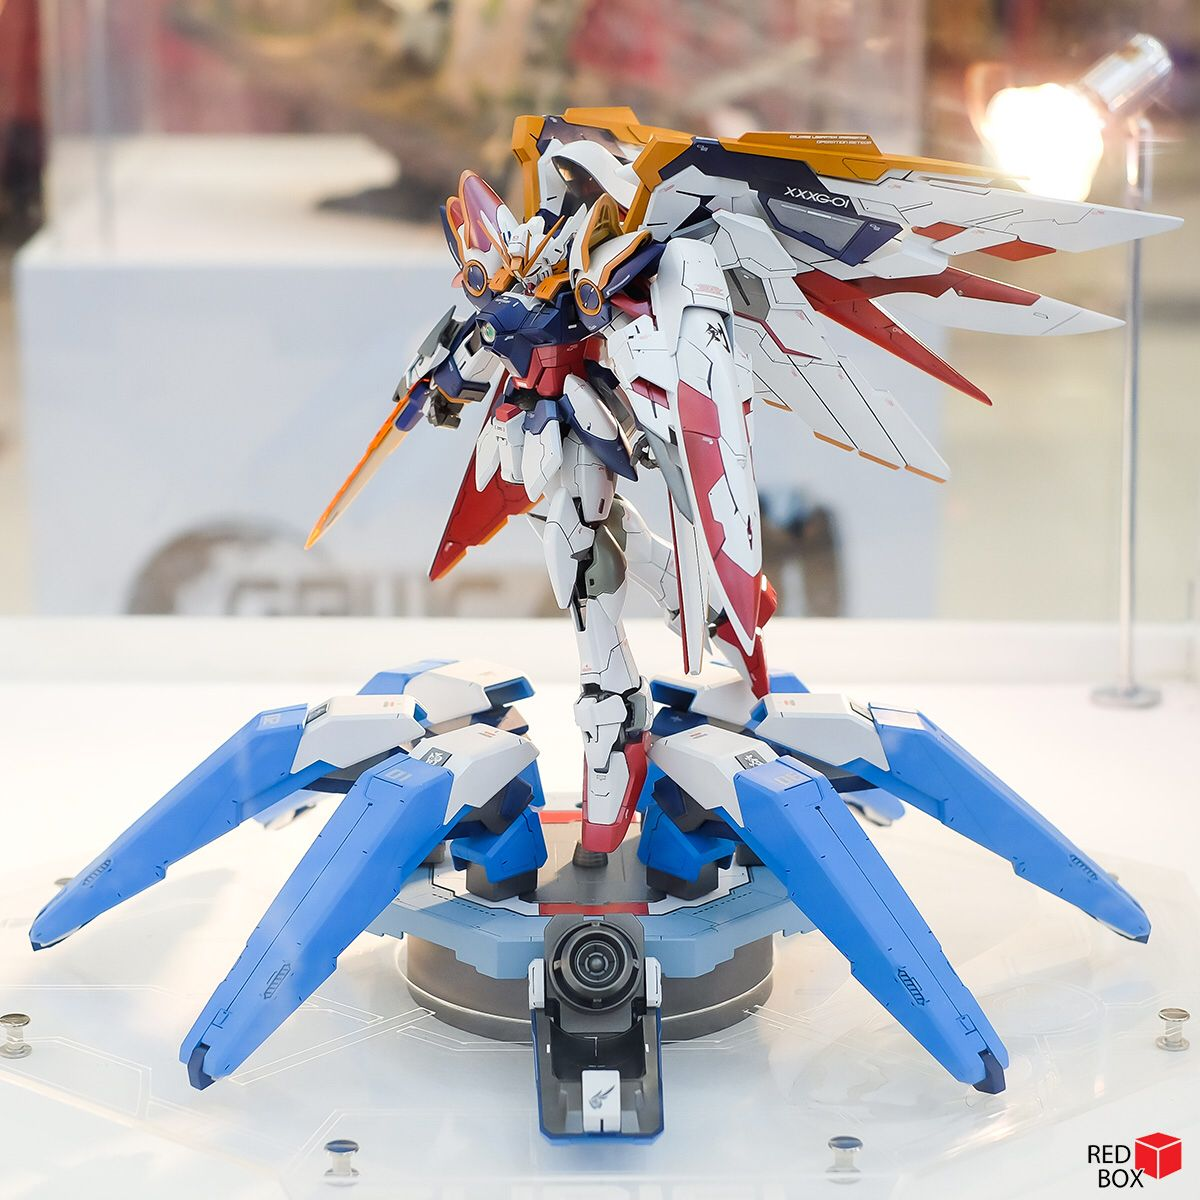 Gunpla Builders World Cup (GBWC) 2015 Indonesia Image